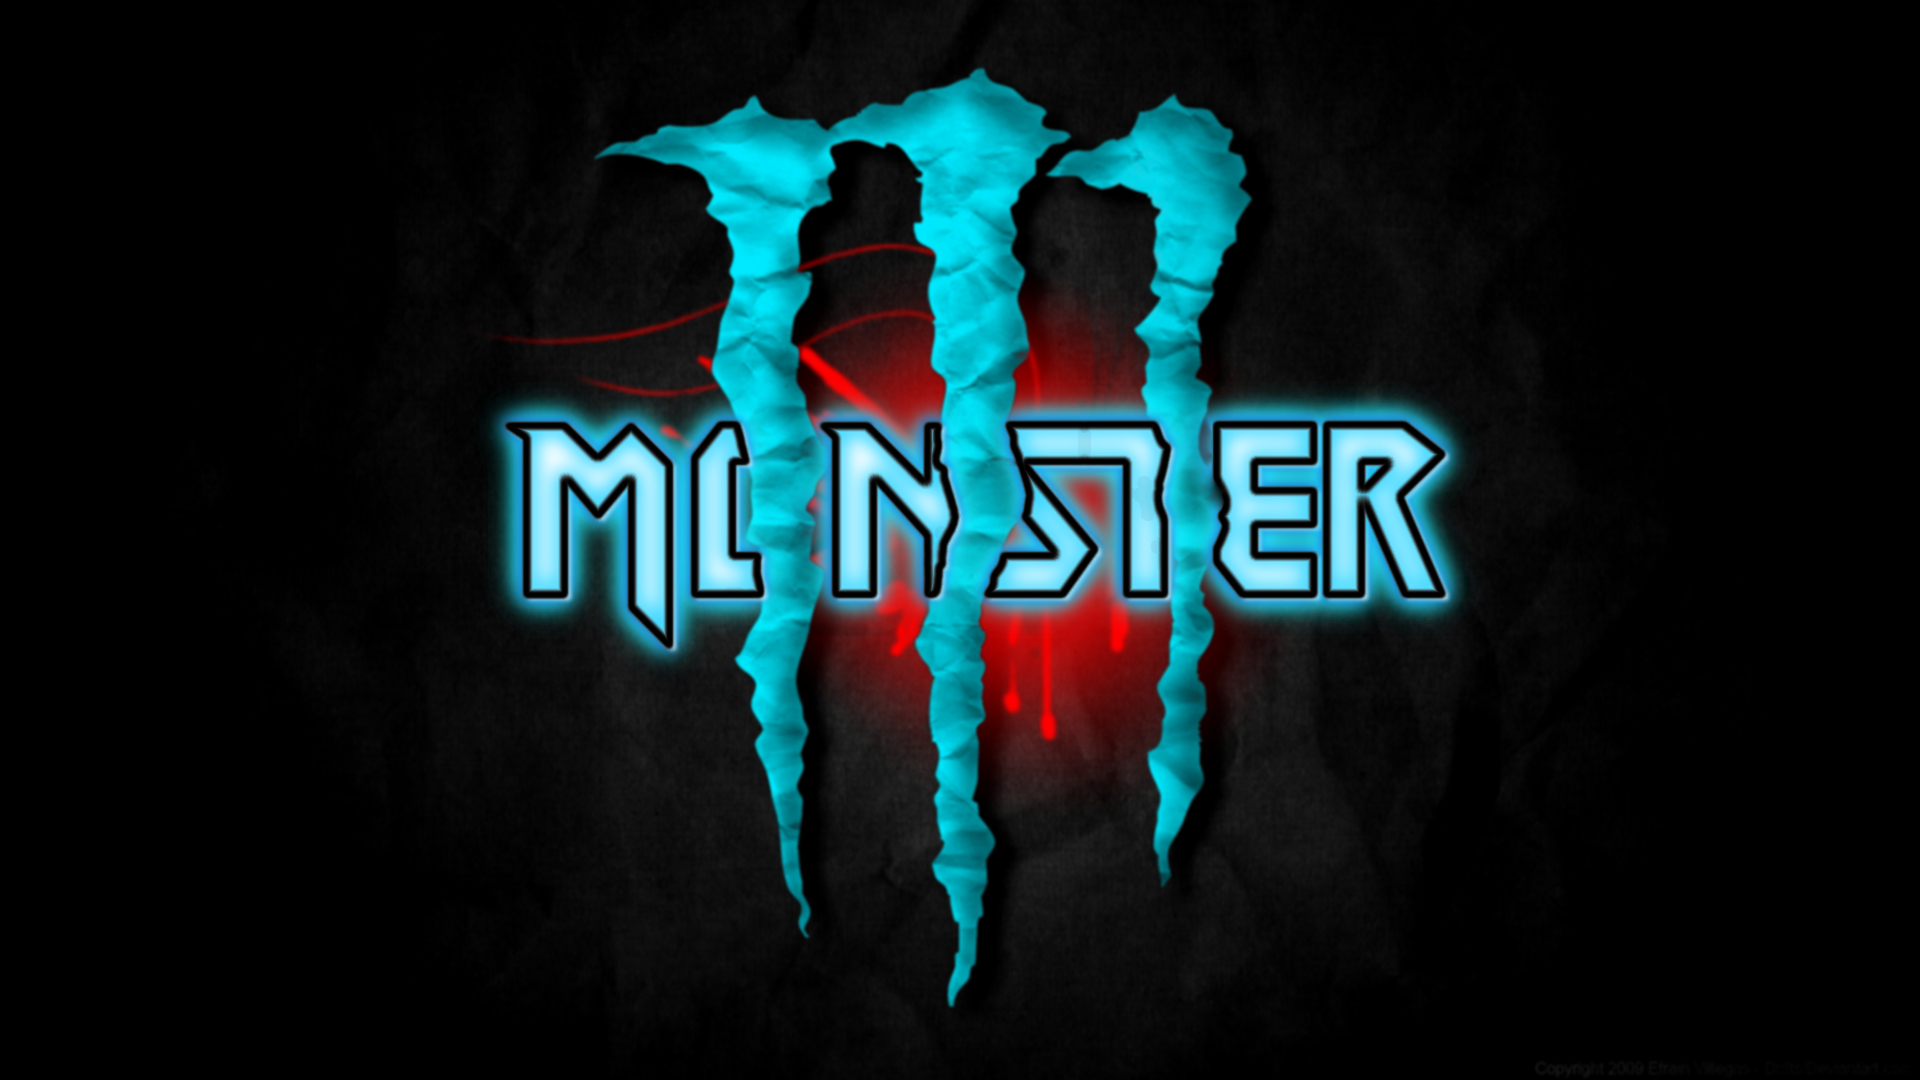 monster energy wallpapers computers wallpaper images 1920x1080 1920x1080